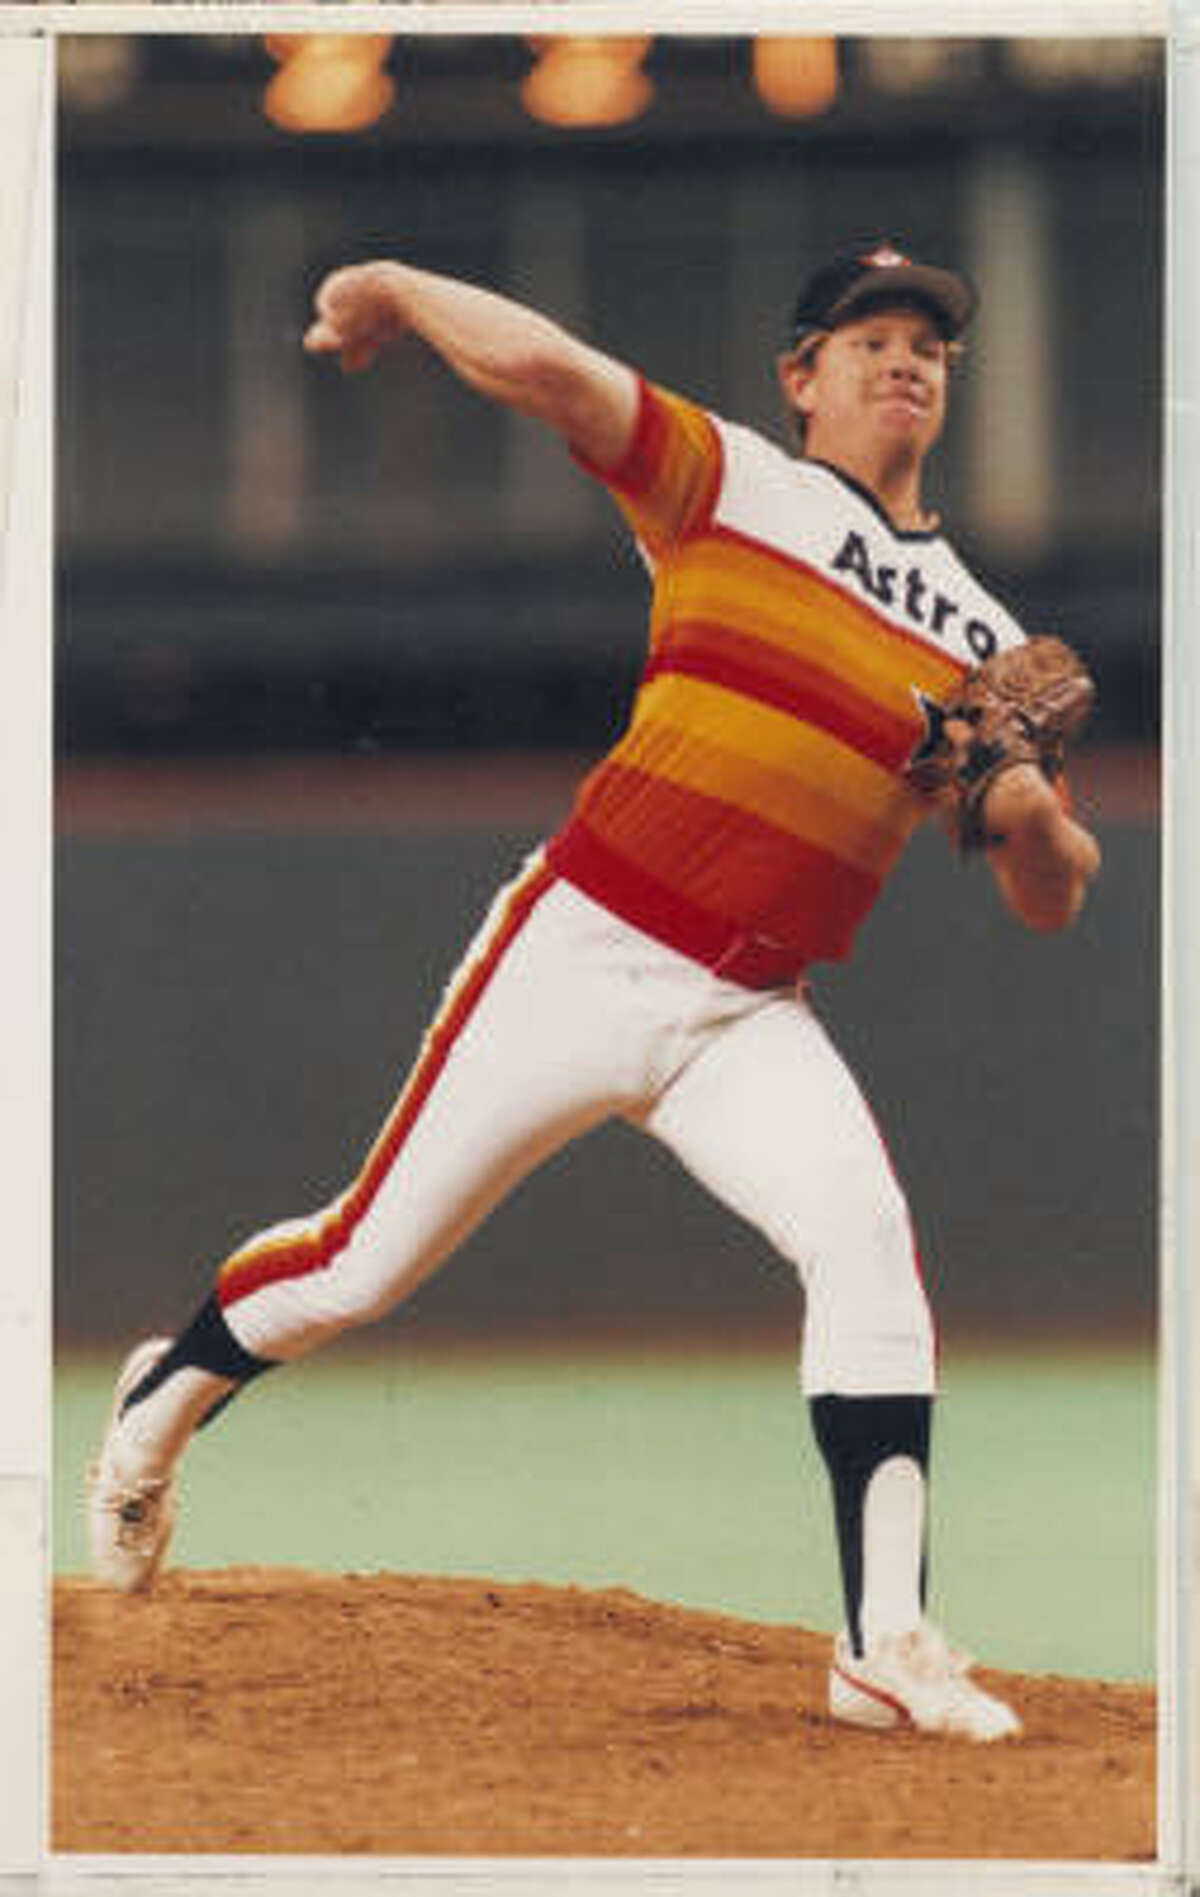 Let's not forget the one-of-a-kind rainbow jersey worn by the Astros from 1975-79.